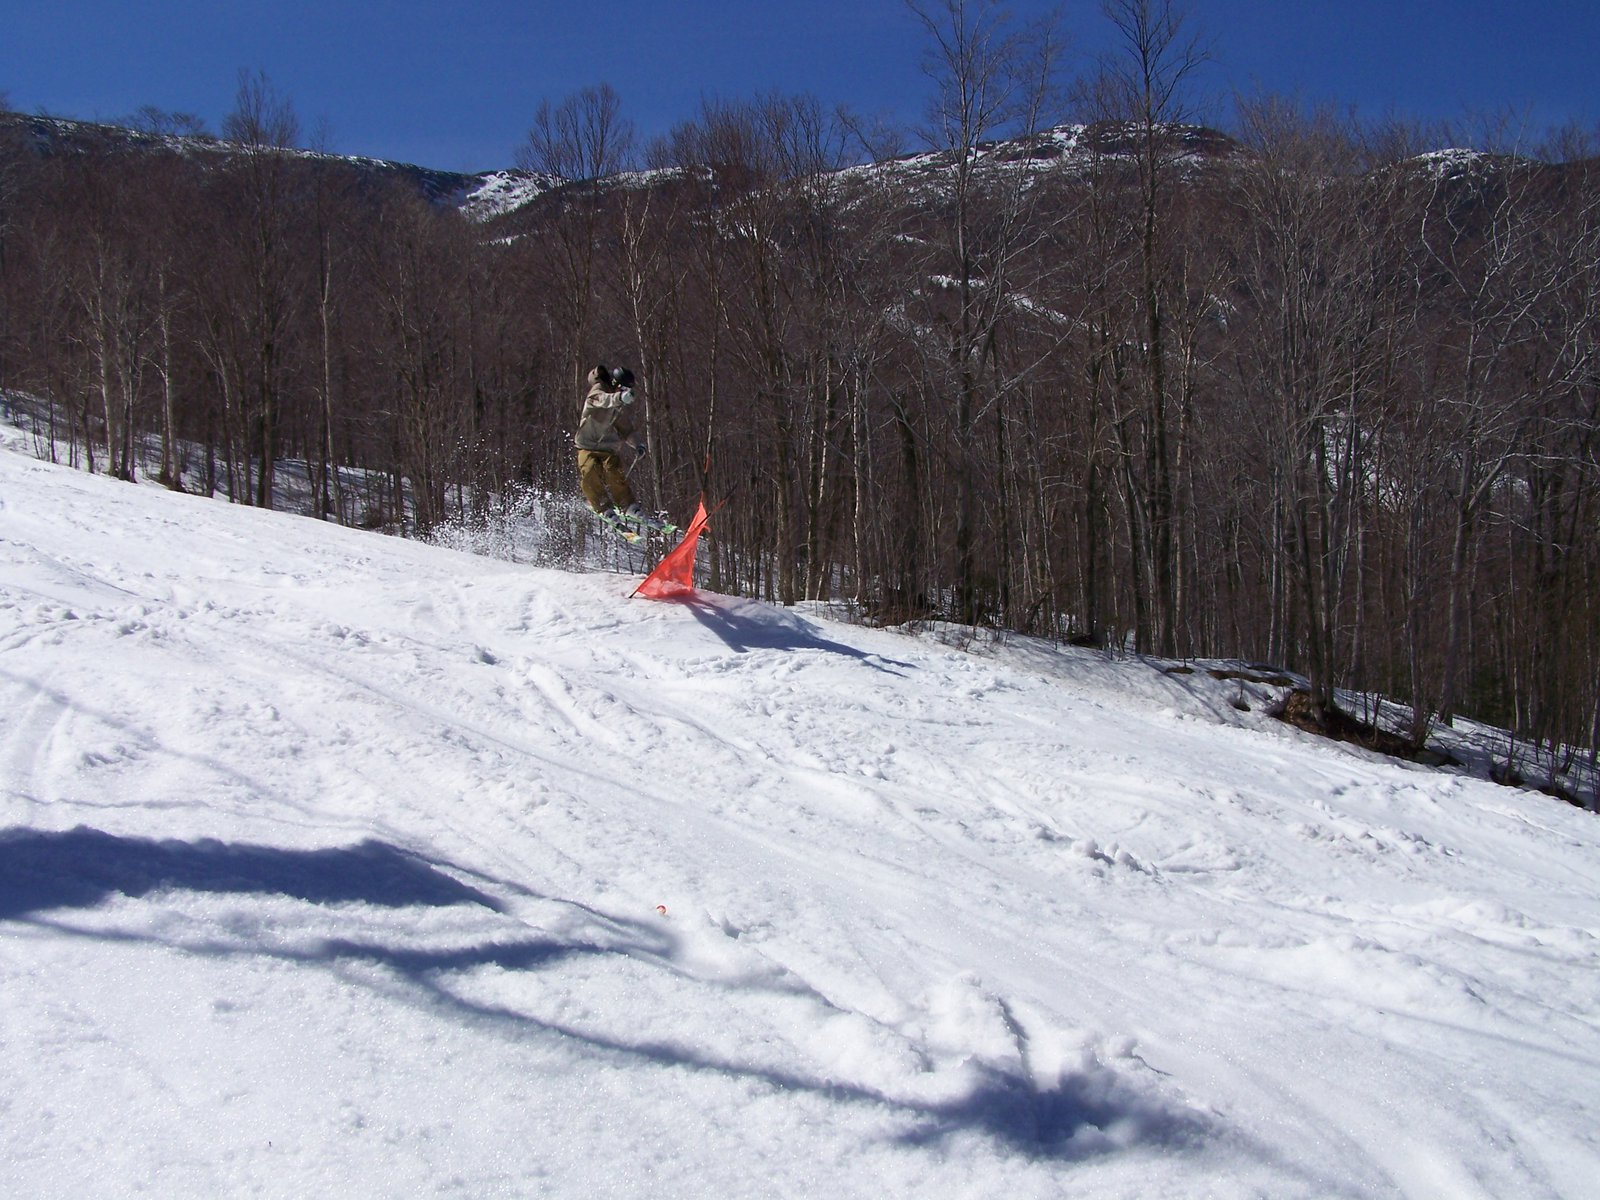 Stowe, 2nd to last day